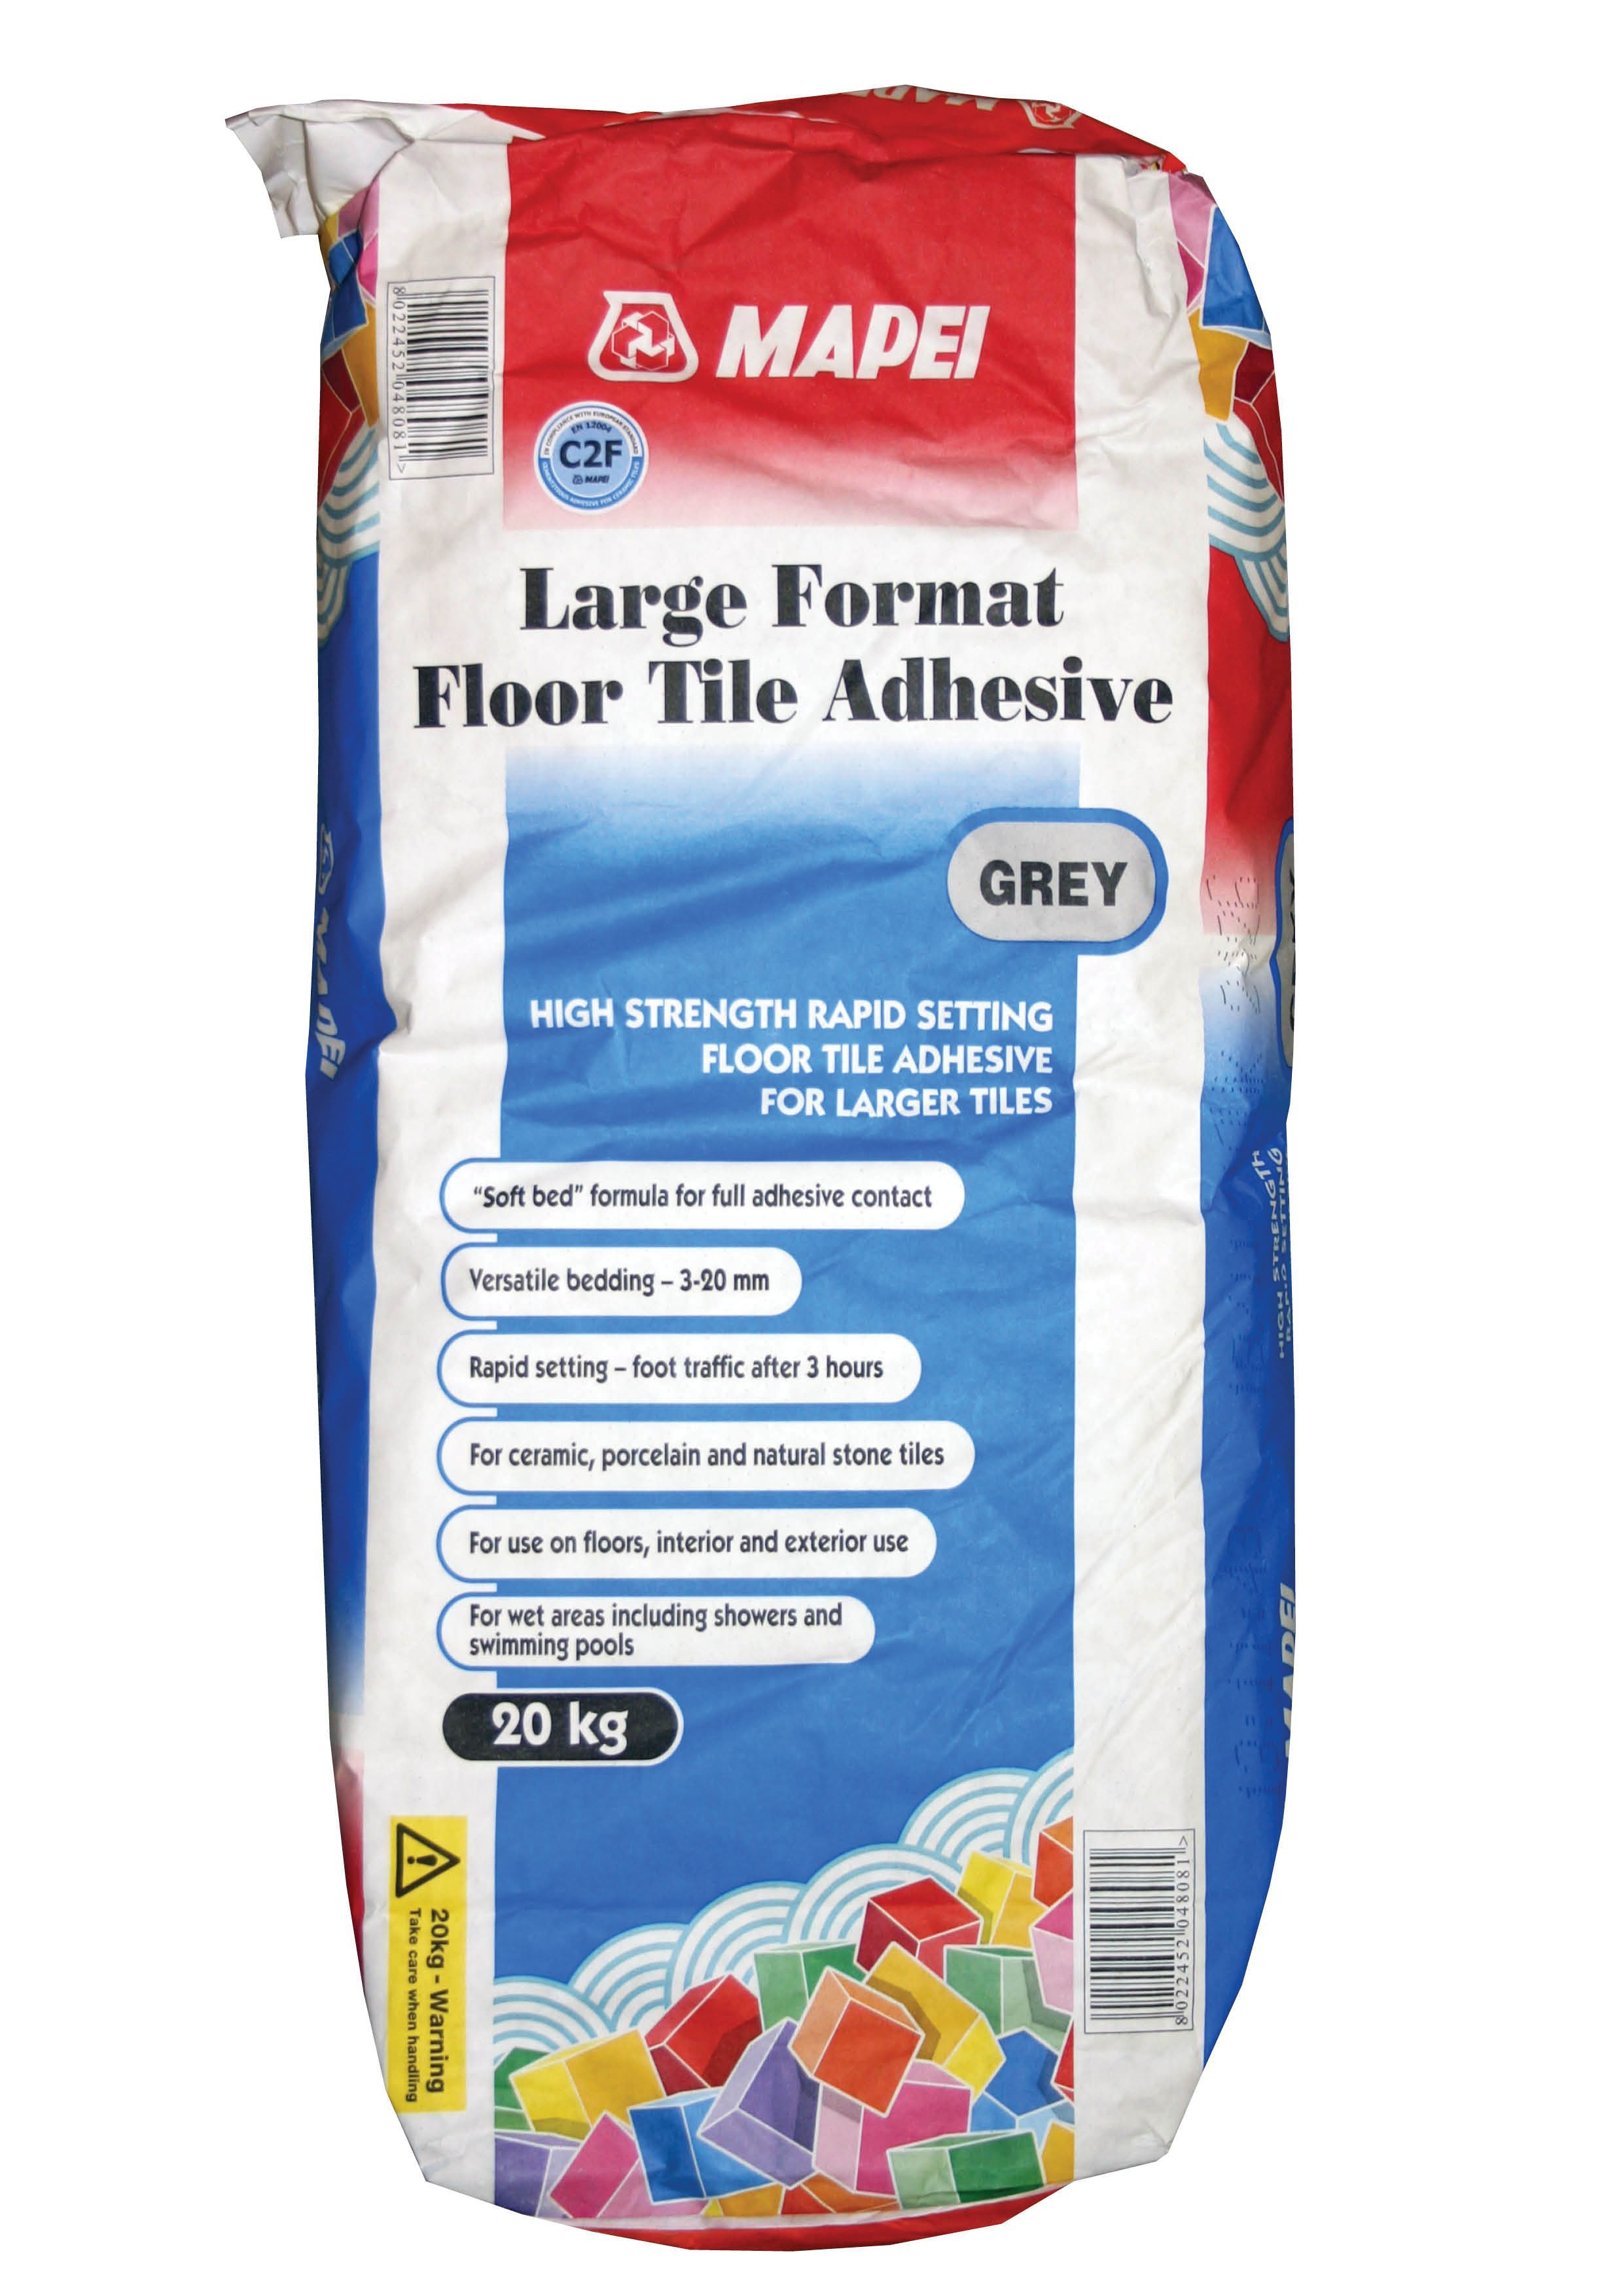 Find mapei ultrabond s997 1k silicone free ready flooring